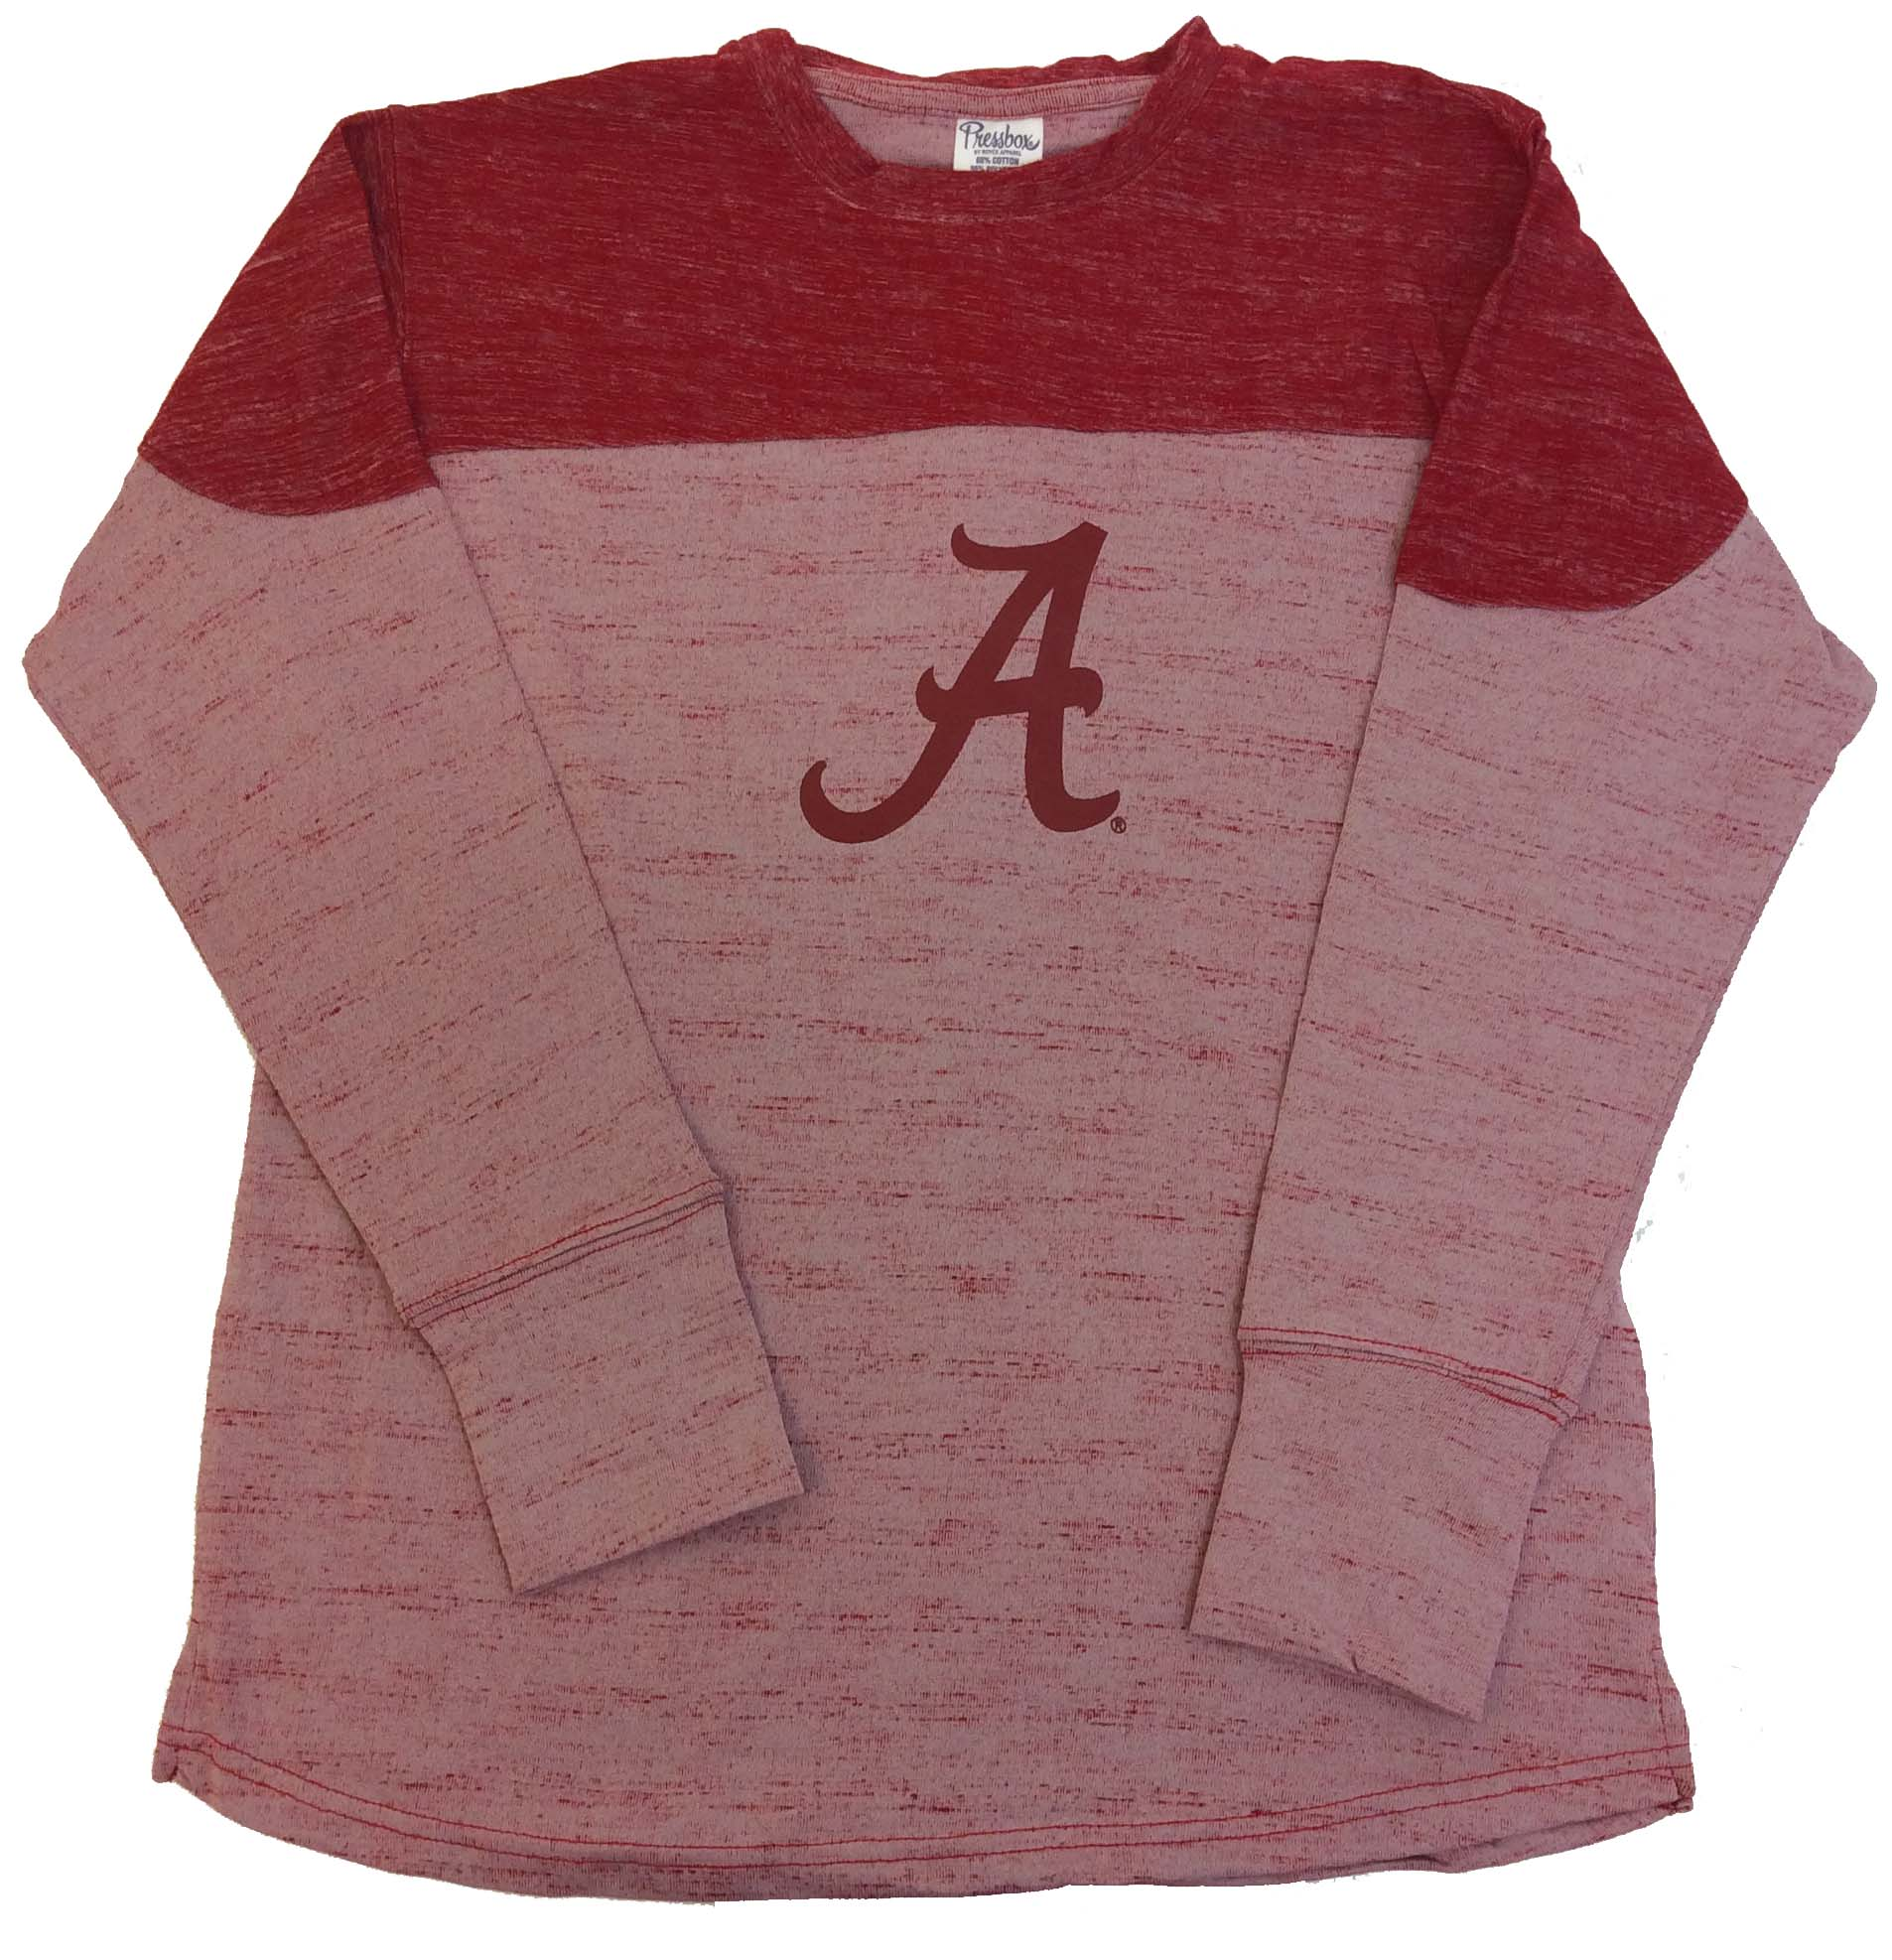 Pressbox Alabama Crimson Tide Fieldman Oversized Long Sleeve Tee